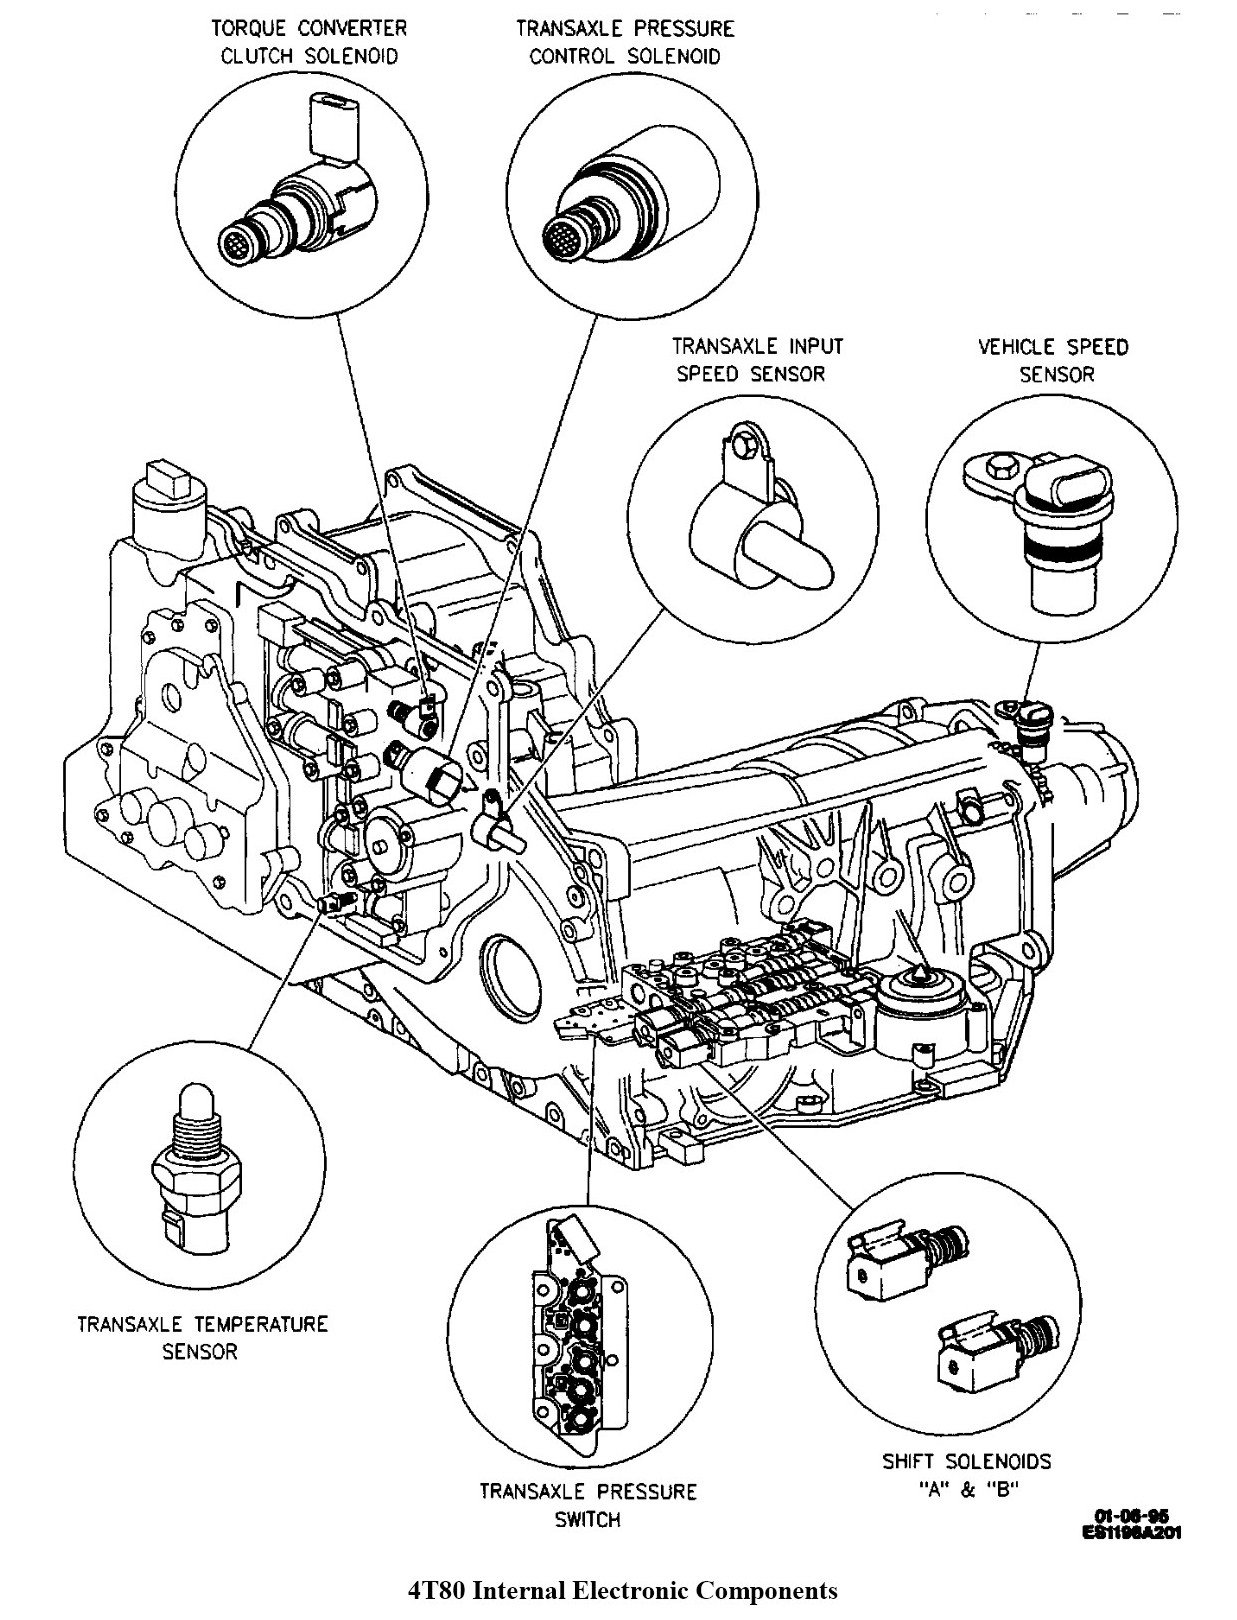 2005 Cadillac Cts Torque Converter Solenoid Wiring Diagram 58 For 2003 Sls 2010 03 02 164937 0000 I Have A 1994 Seville With The Northstar Engine At